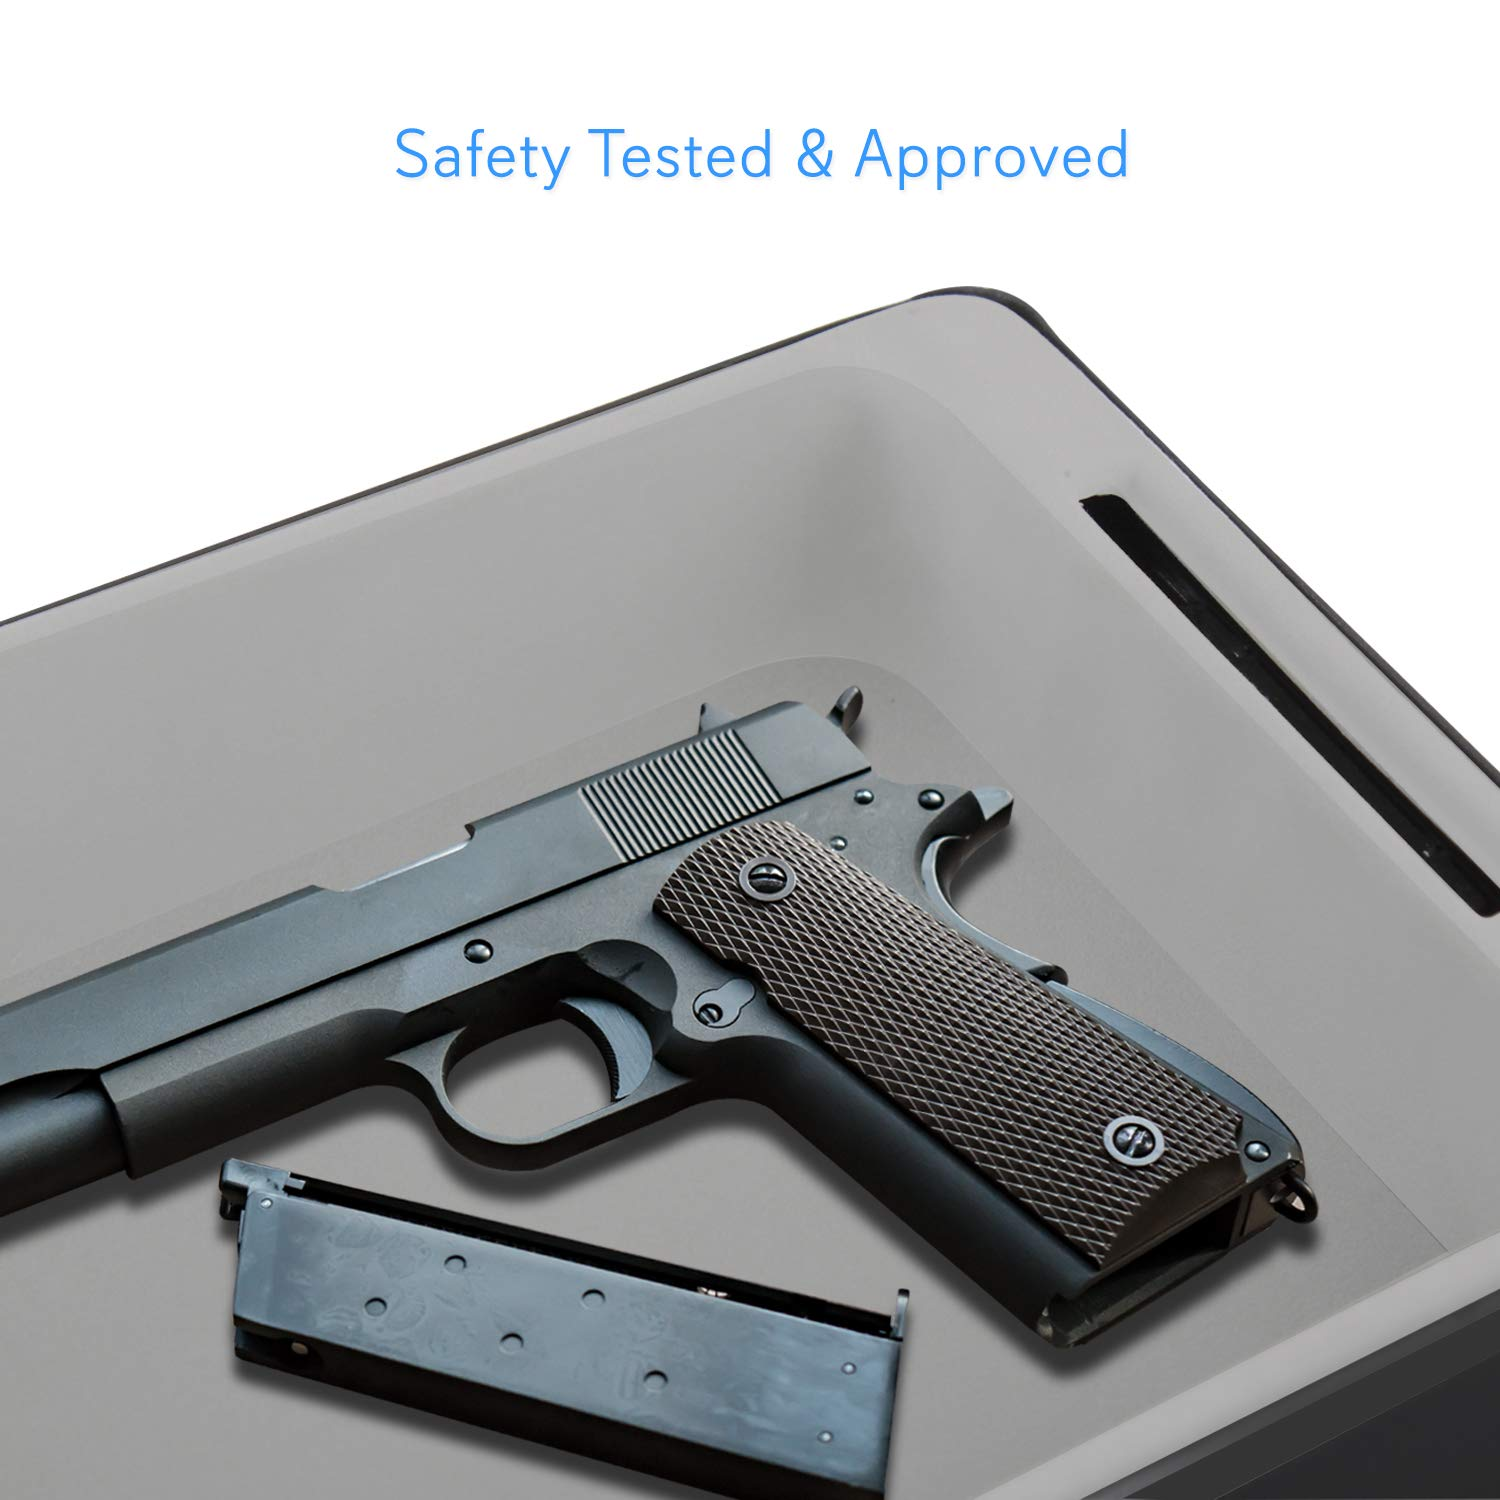 Portable Pistol Handgun Safe Box - Keyless Mechanical Lock Gun Security Storage Case with 3 Digit Secure Combination Locking, Mount Cable - for Firearm, Jewelry - Home, Car - SereneLife SLSFCR21 by SereneLife (Image #5)